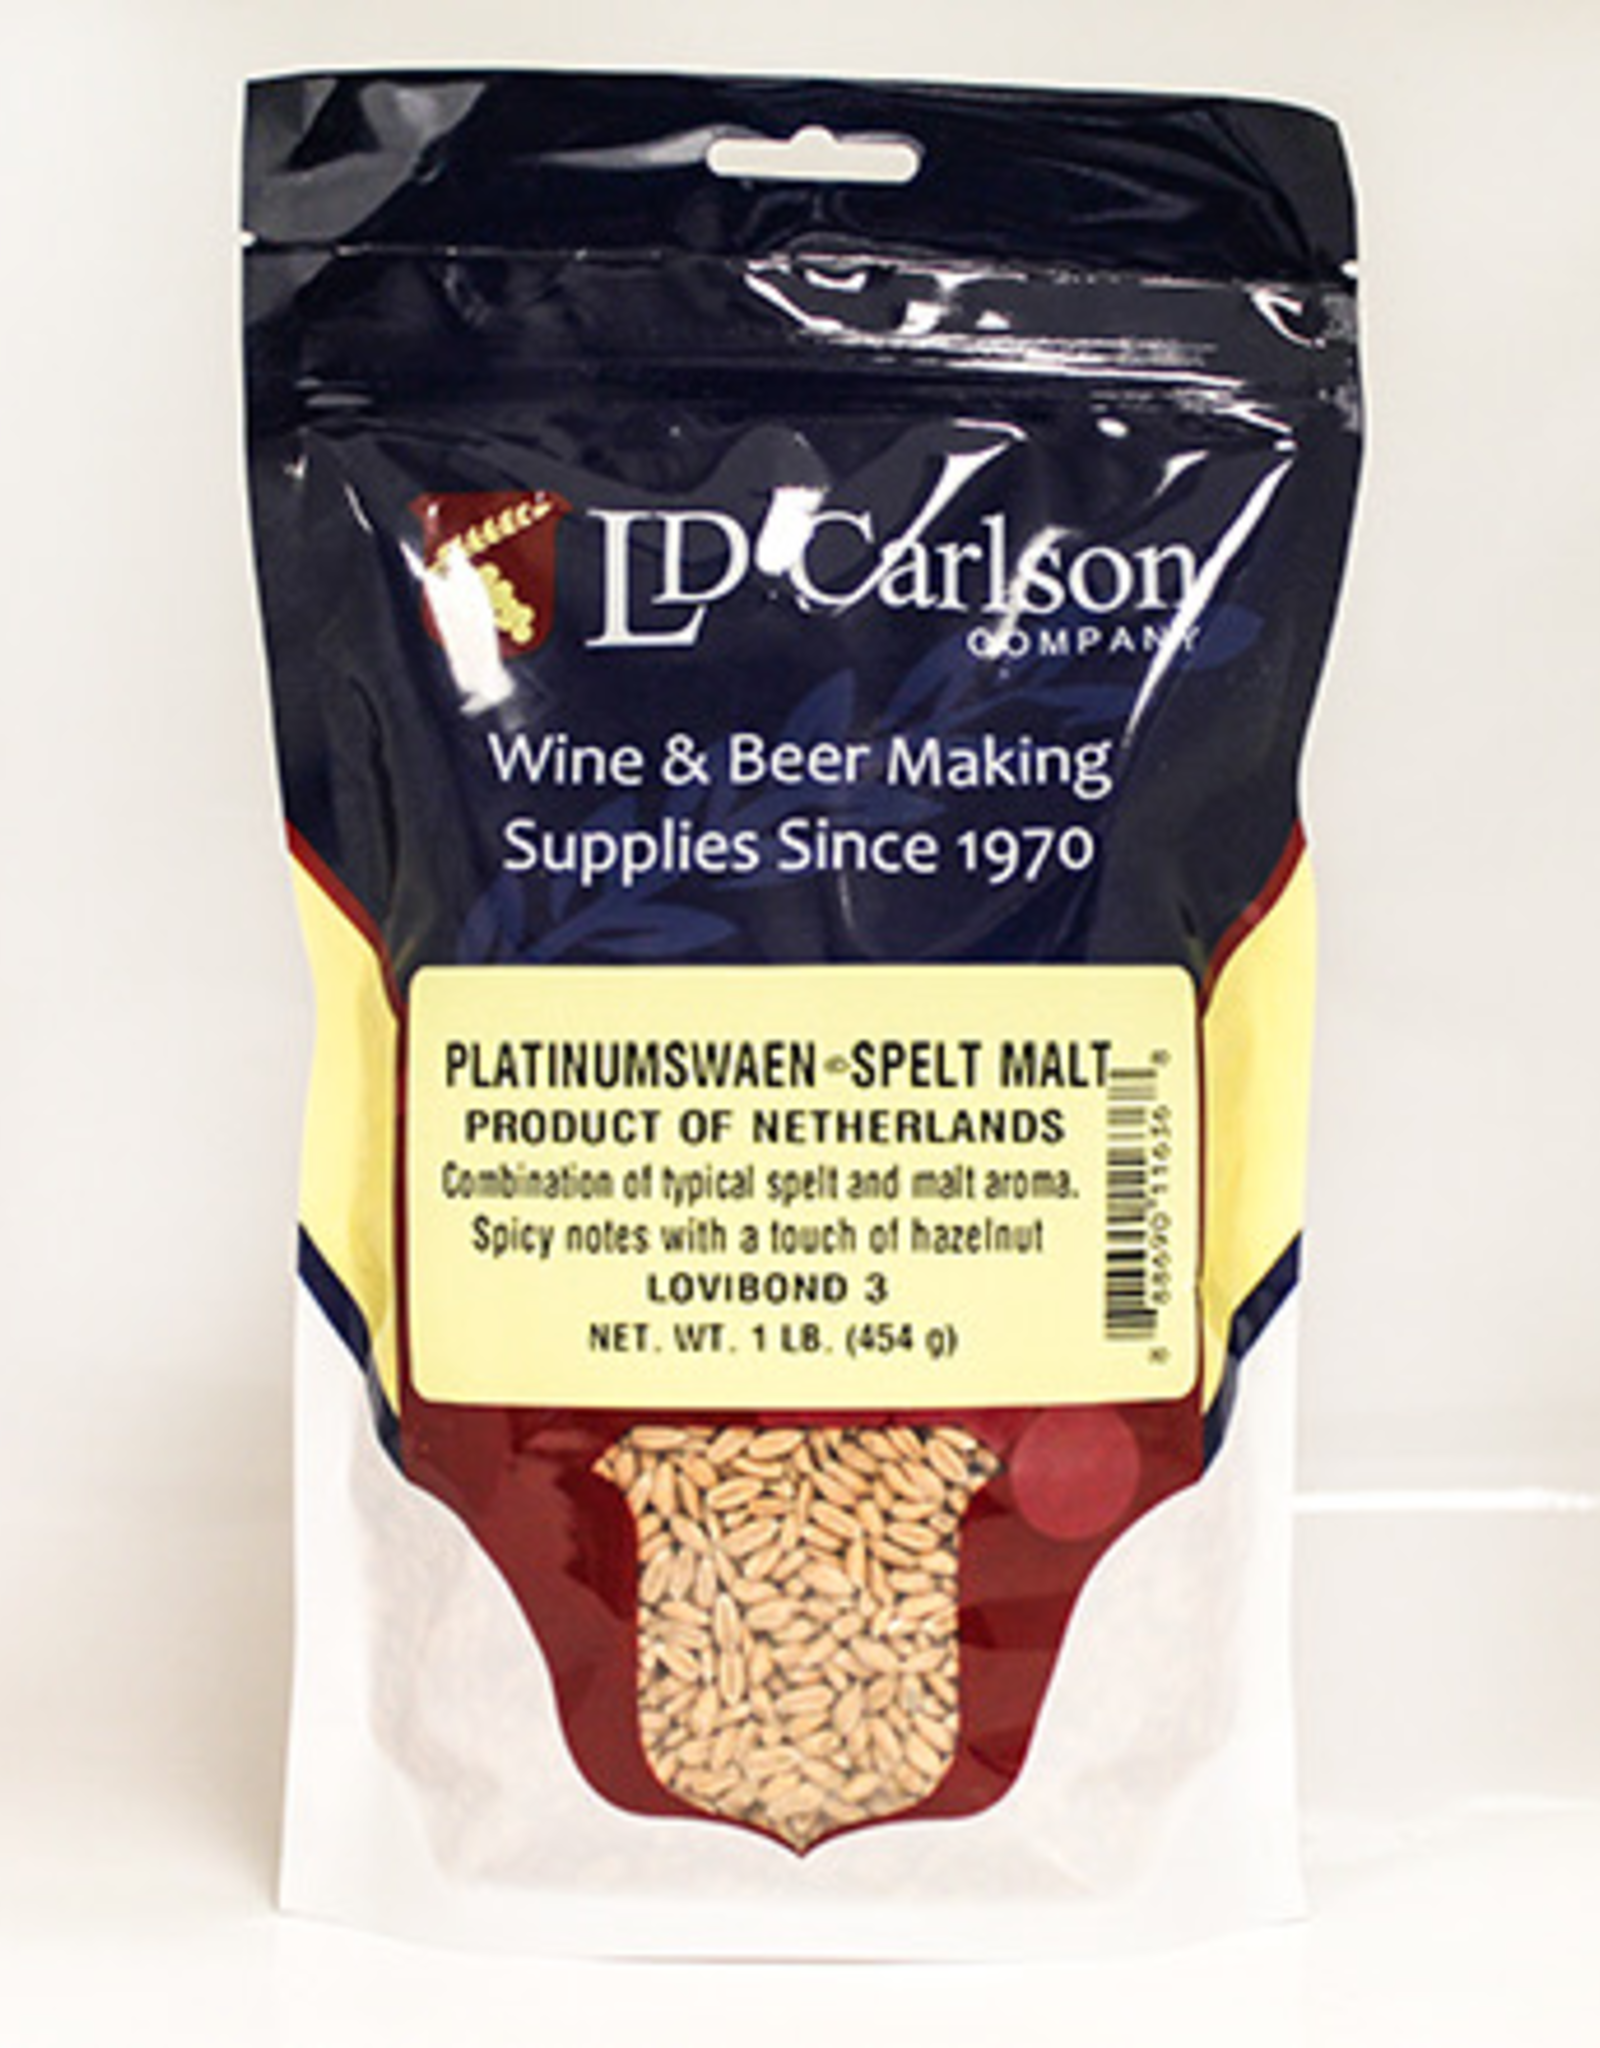 PLATINUMSWAEN Combination of typical spelt and malt aromas. Nice spicy notes with a touch of hazelnut.